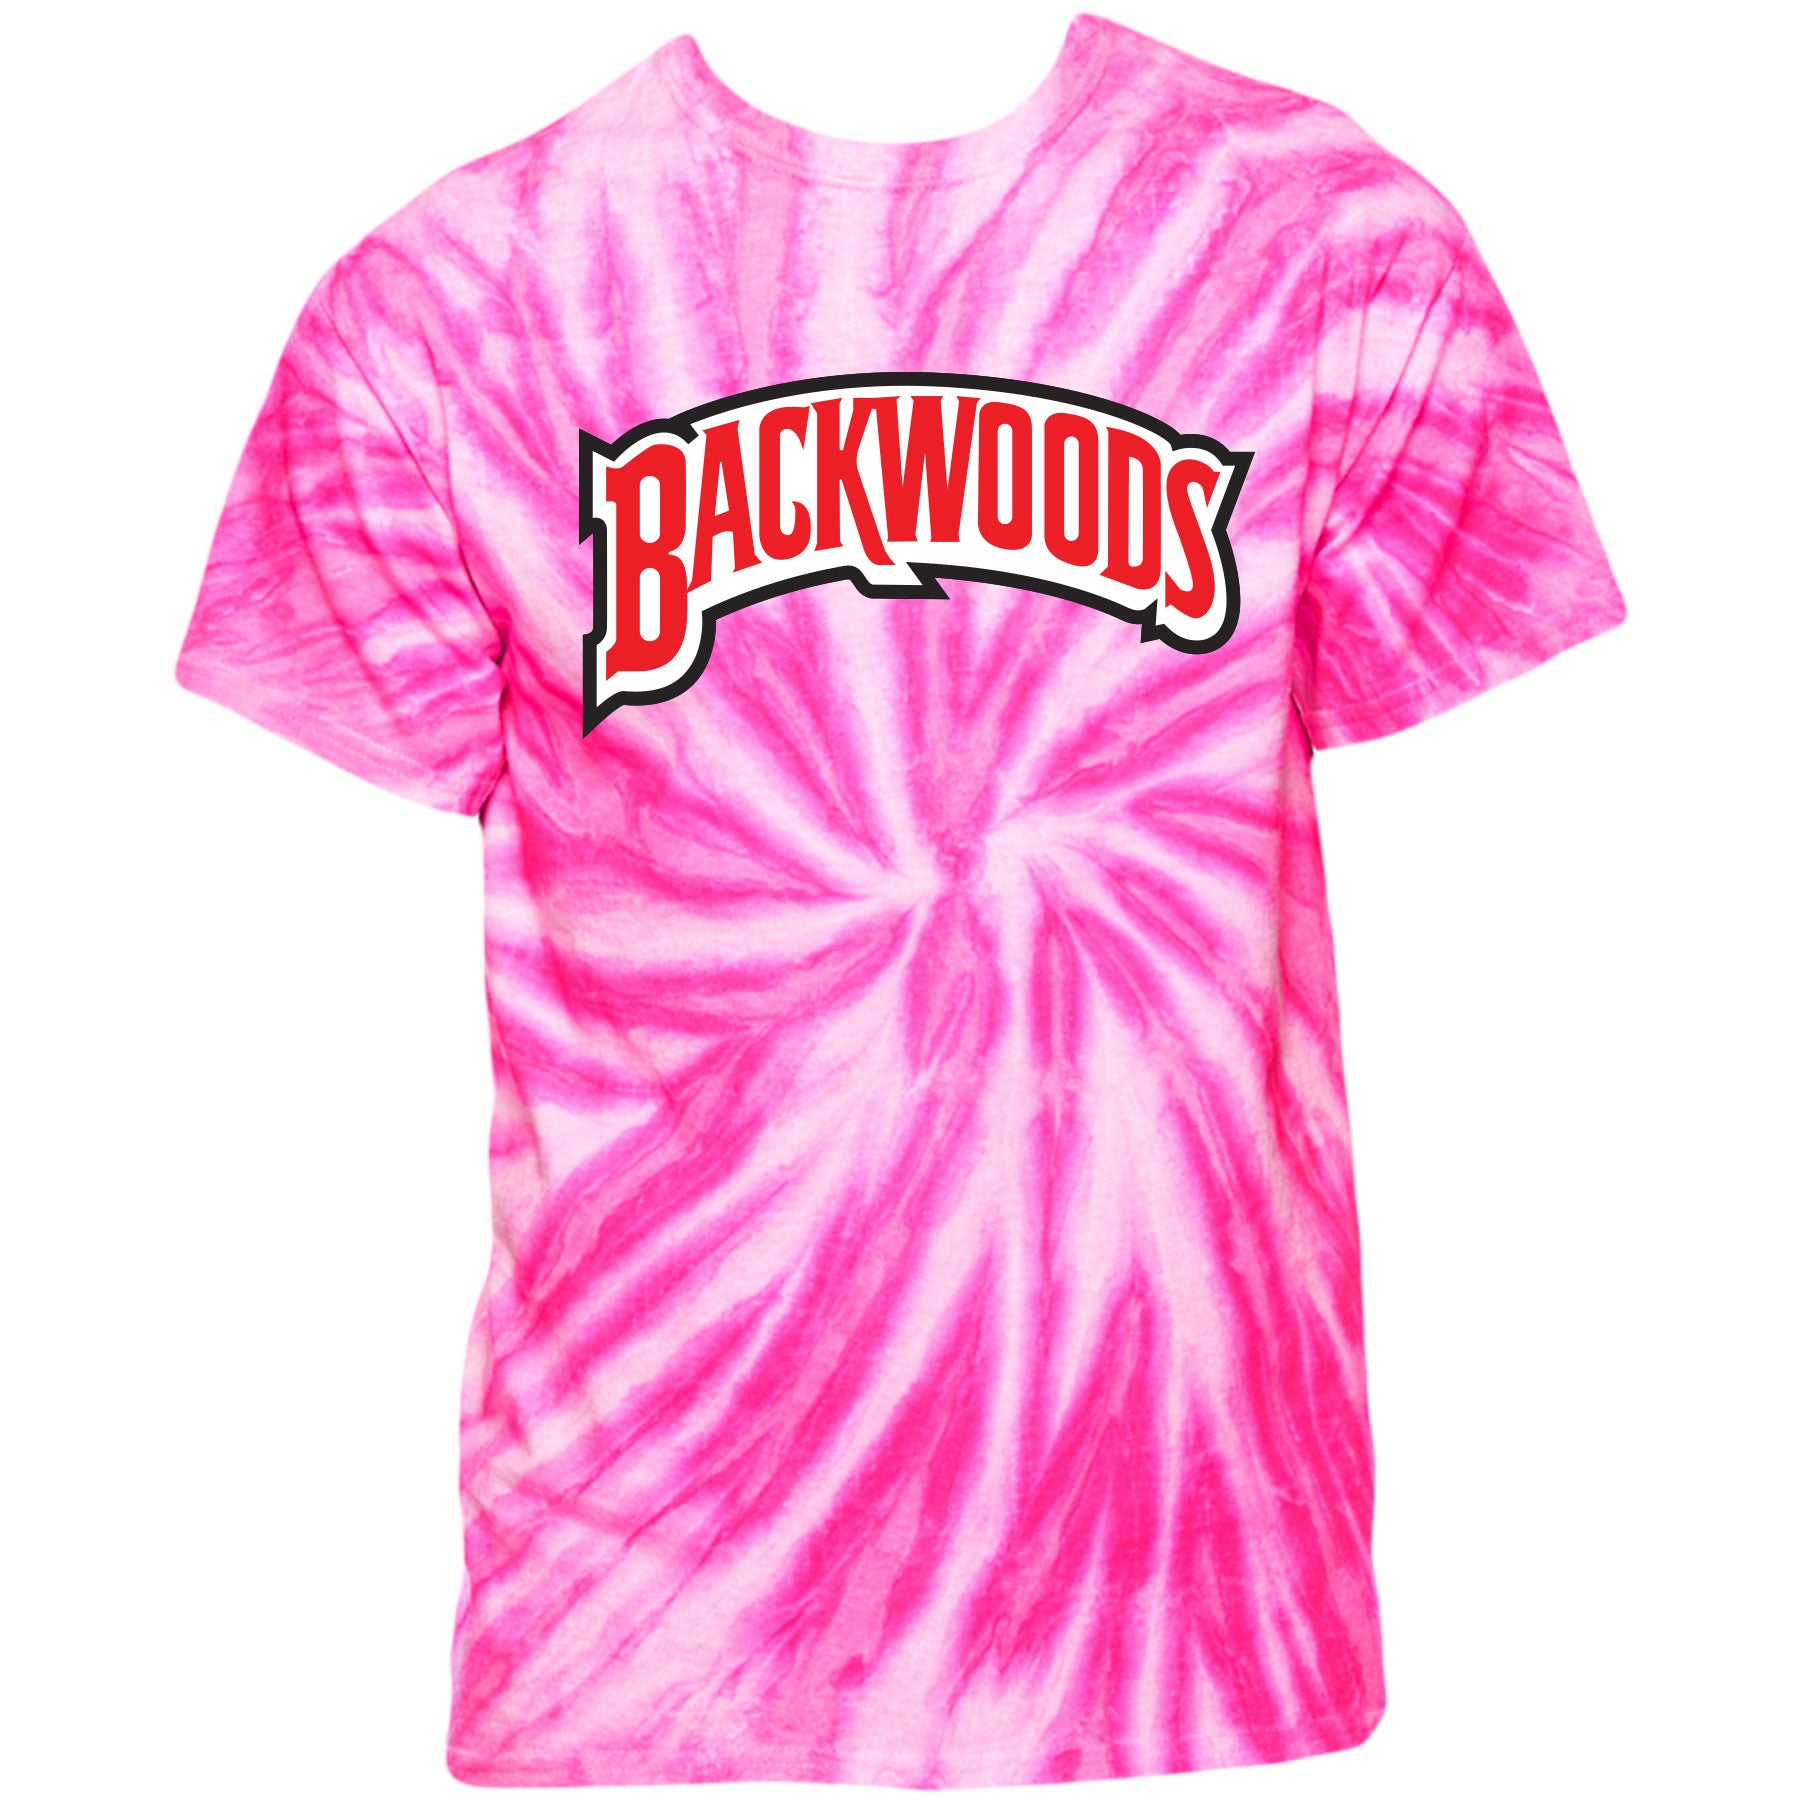 Printed on the front of the Backwoods pink honey berry tie-dye swirl t- b7f64b1be